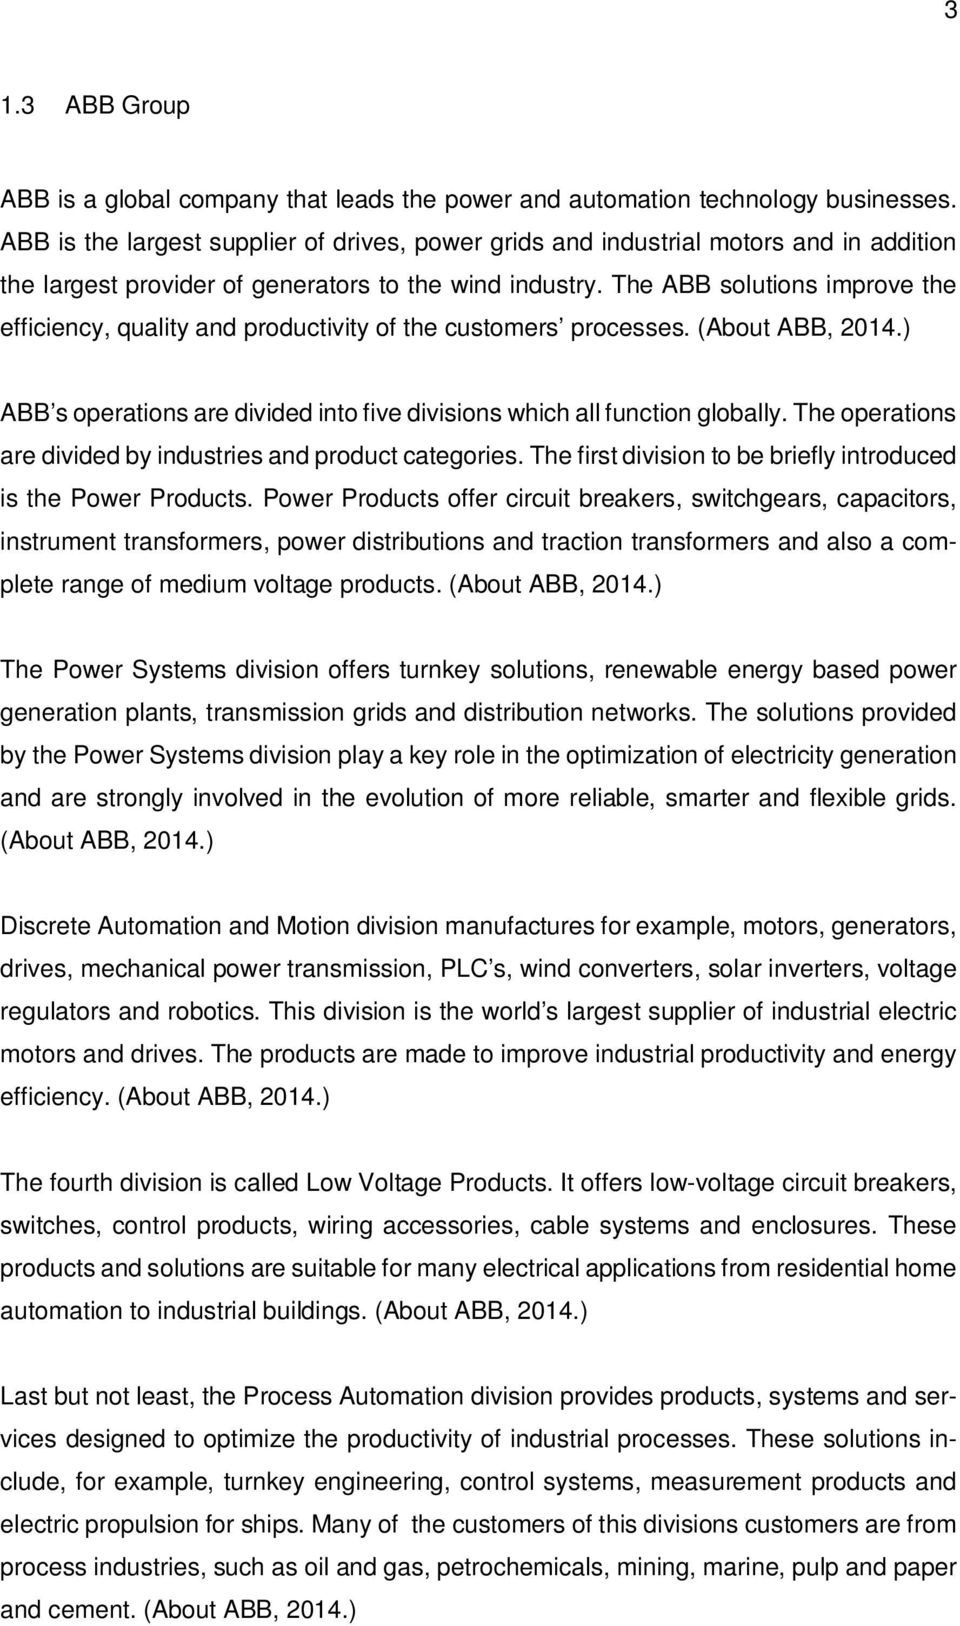 Purchasing Lead Time Reduction Case Abb Oy Drives Pdf Control Gt Power Supply Circuit Breakers Generators For Automation The Solutions Improve Efficiency Quality And Productivity Of Customers Processes